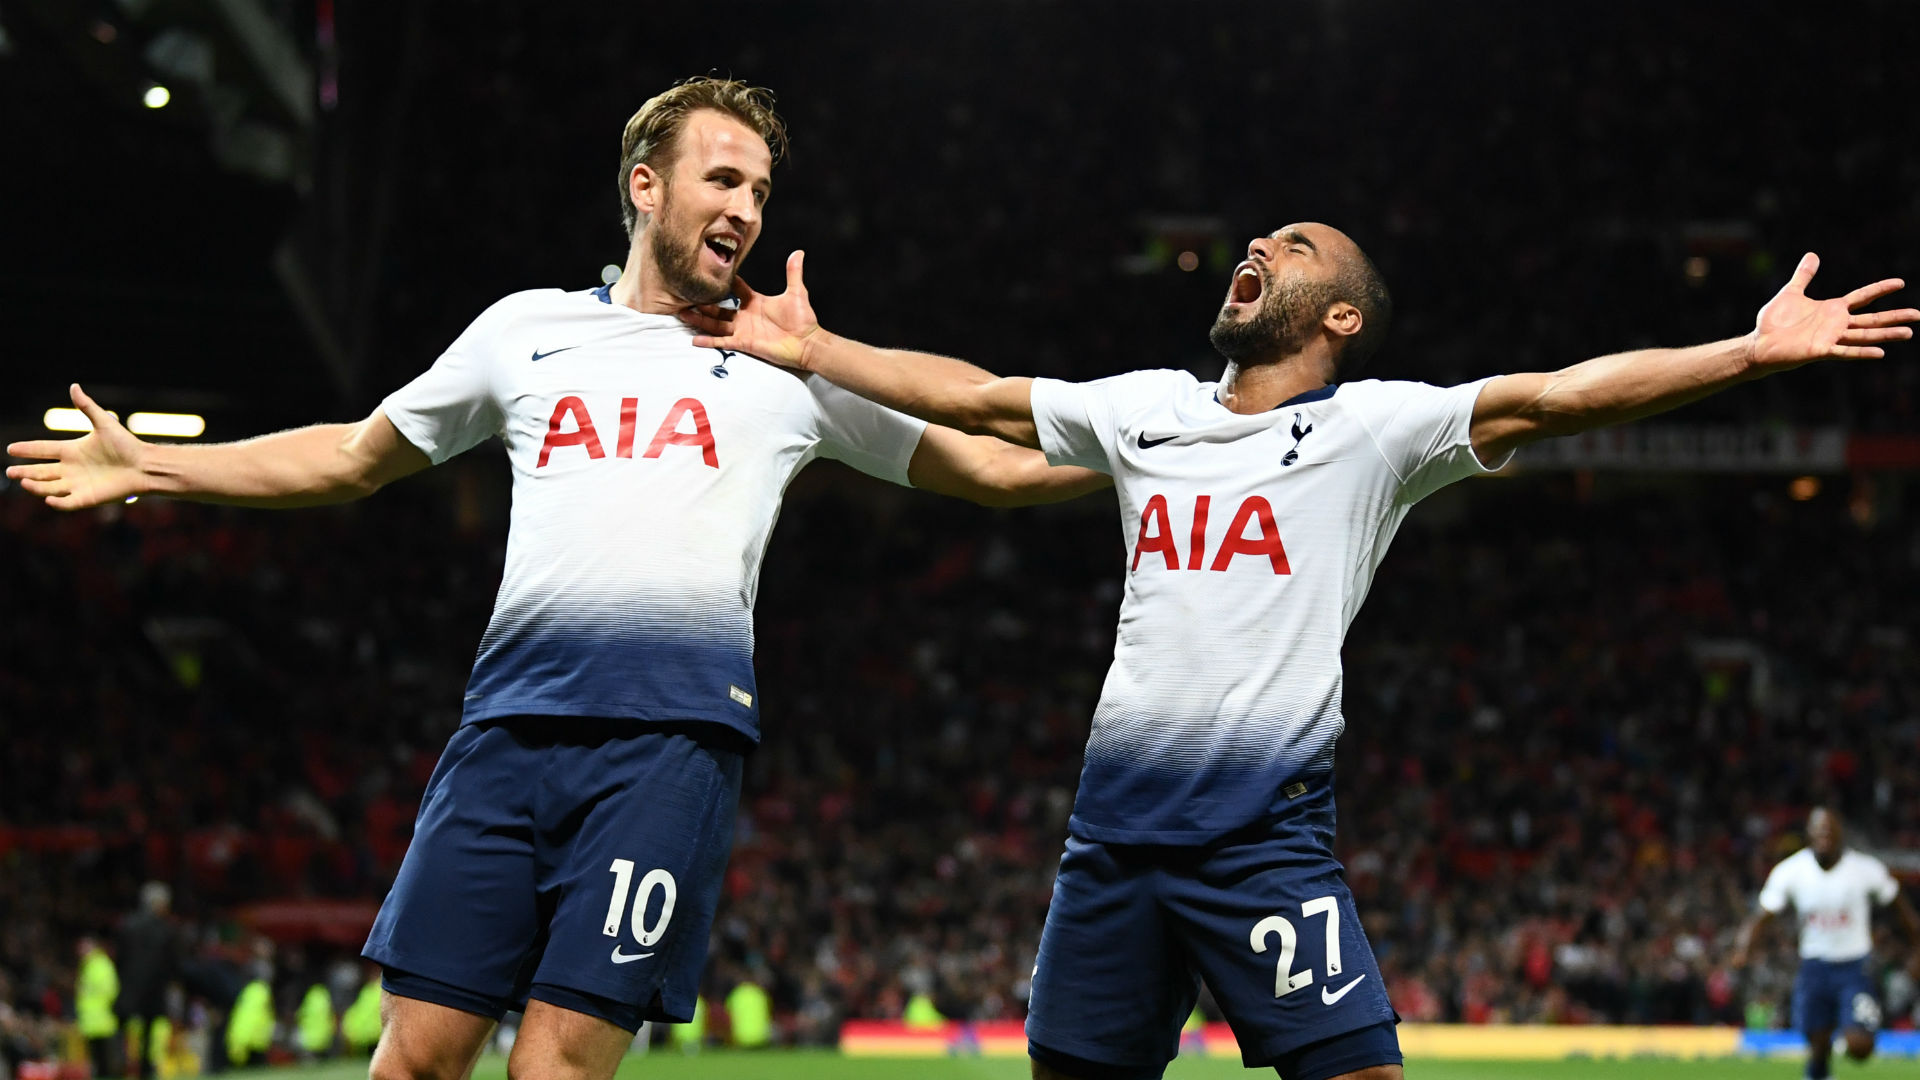 Tottenham Hotspur v Liverpool Betting Tips: Latest odds, team news, preview and predictions